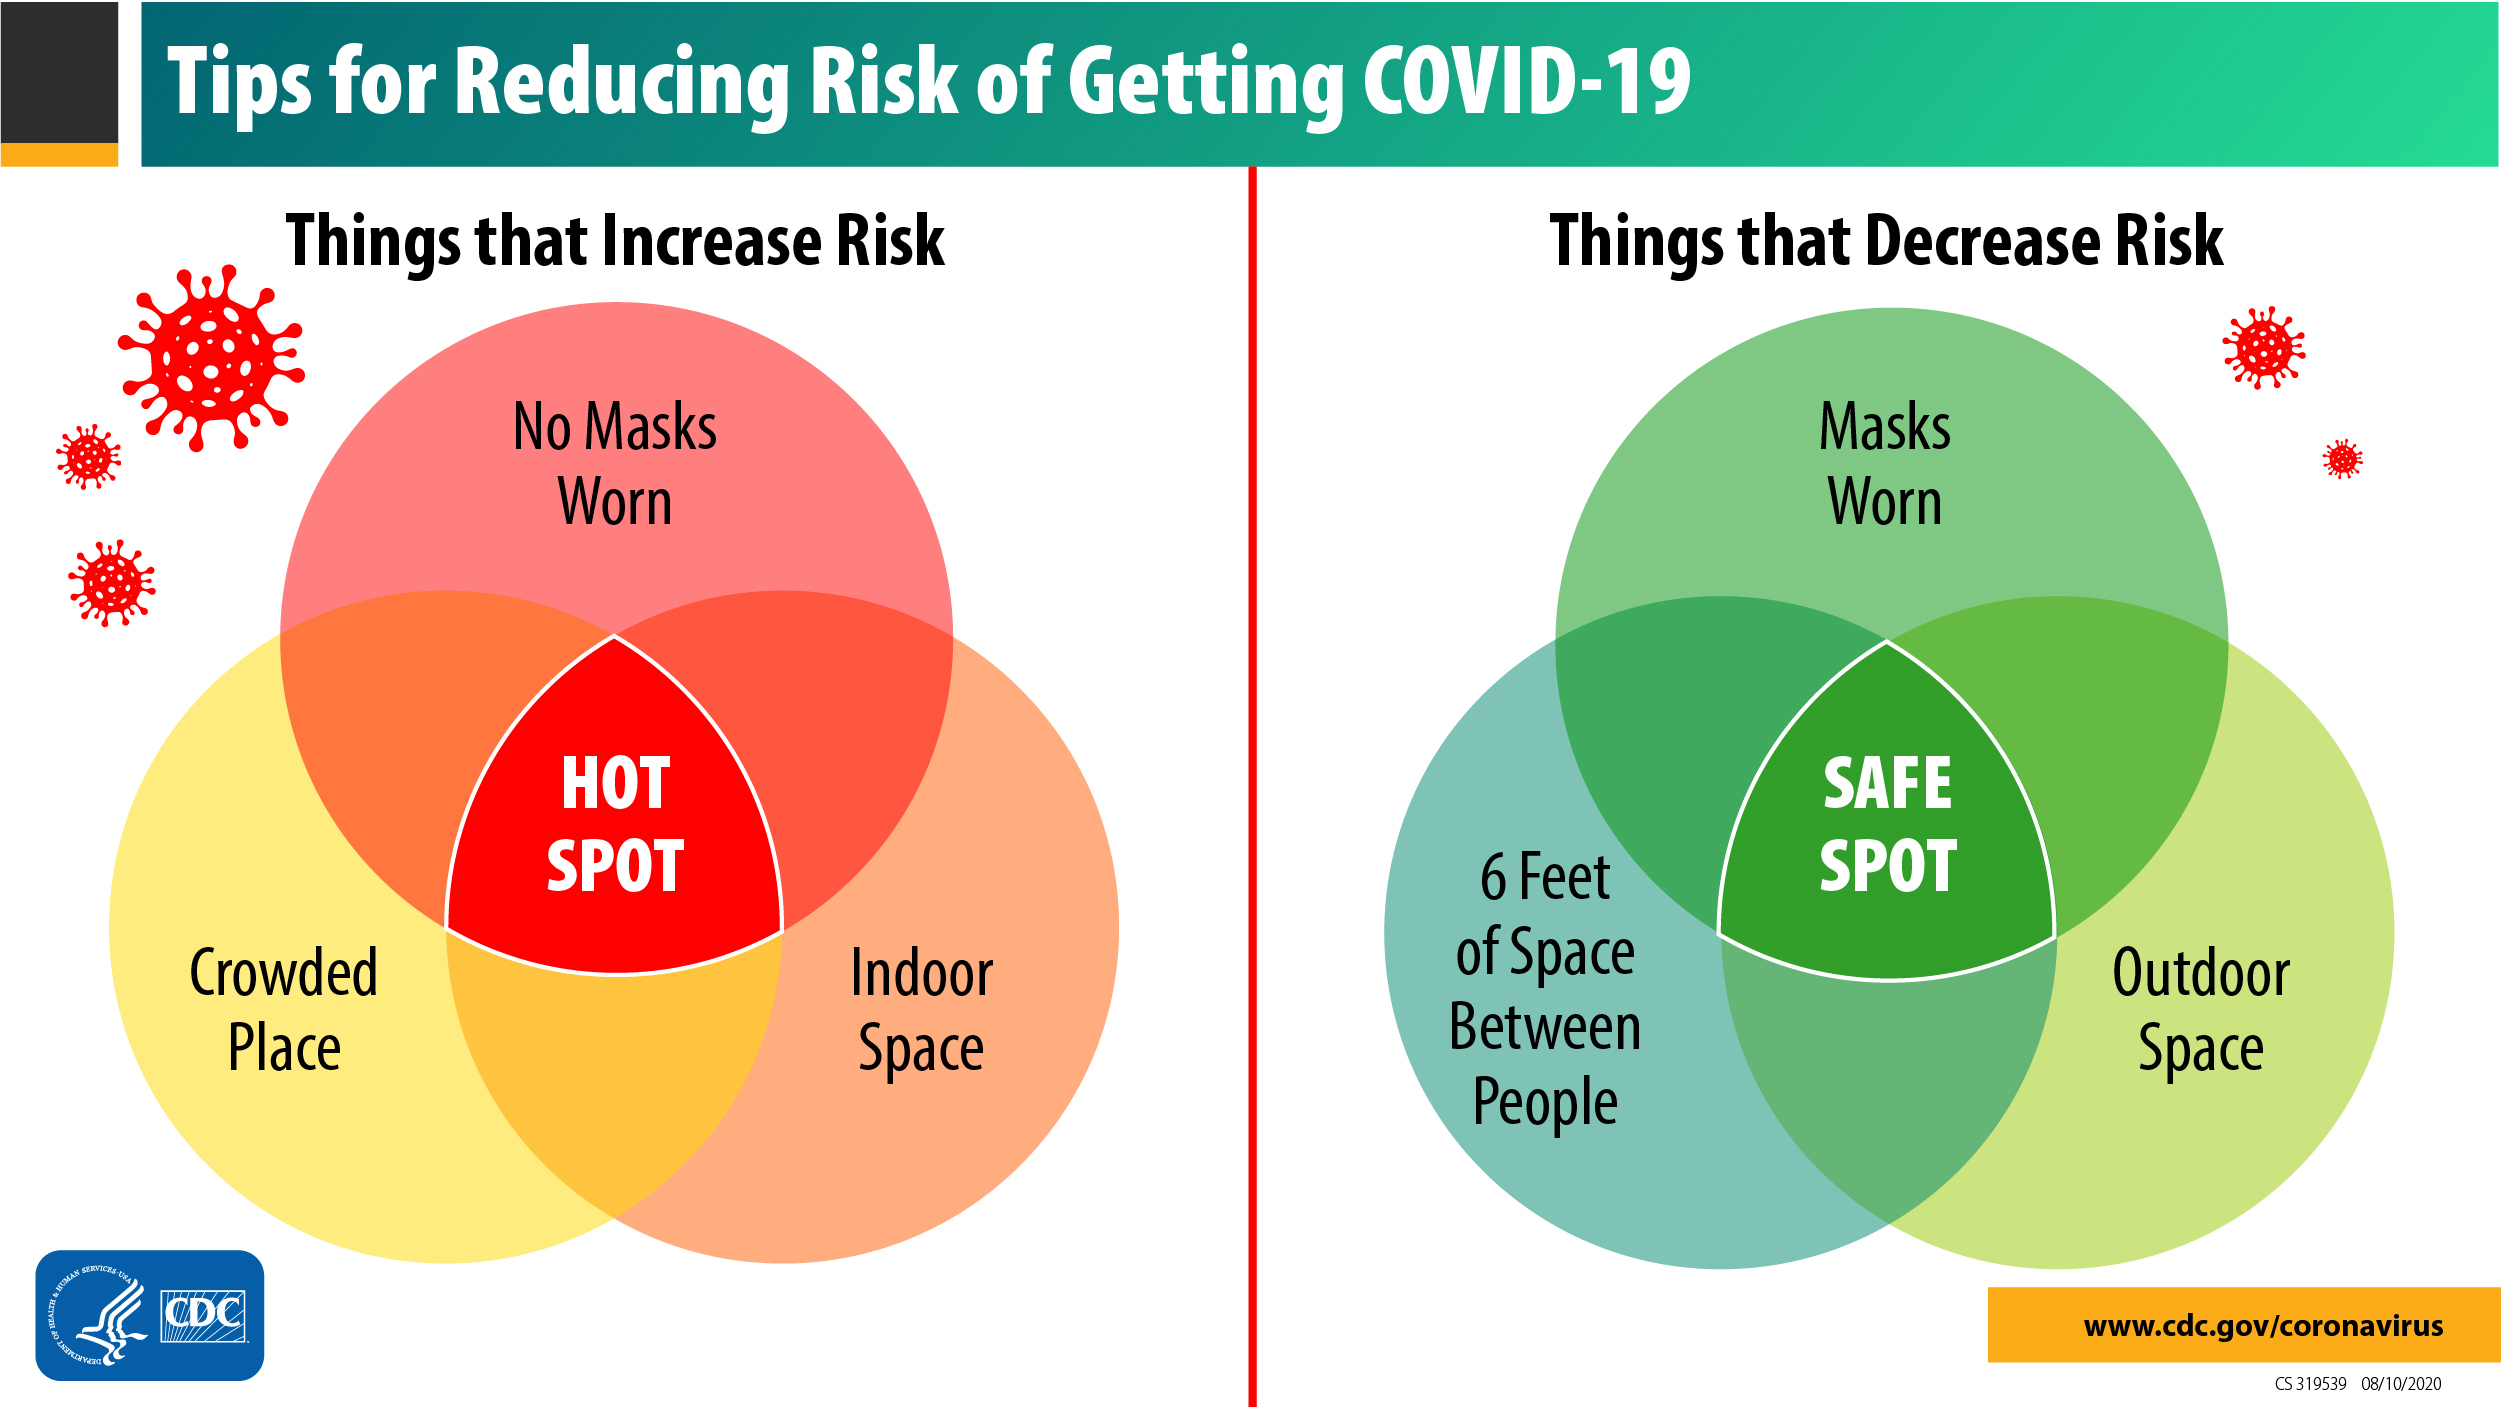 Tips for reducing risk of getting COVID-19. Things that increase risk: No masks worn, crowed space, indoor space = HOT SPOT. Things that decrease risk: Masks worn, 6 feet of space between people, outdoor space = SAFE SPOT. Opens in new window